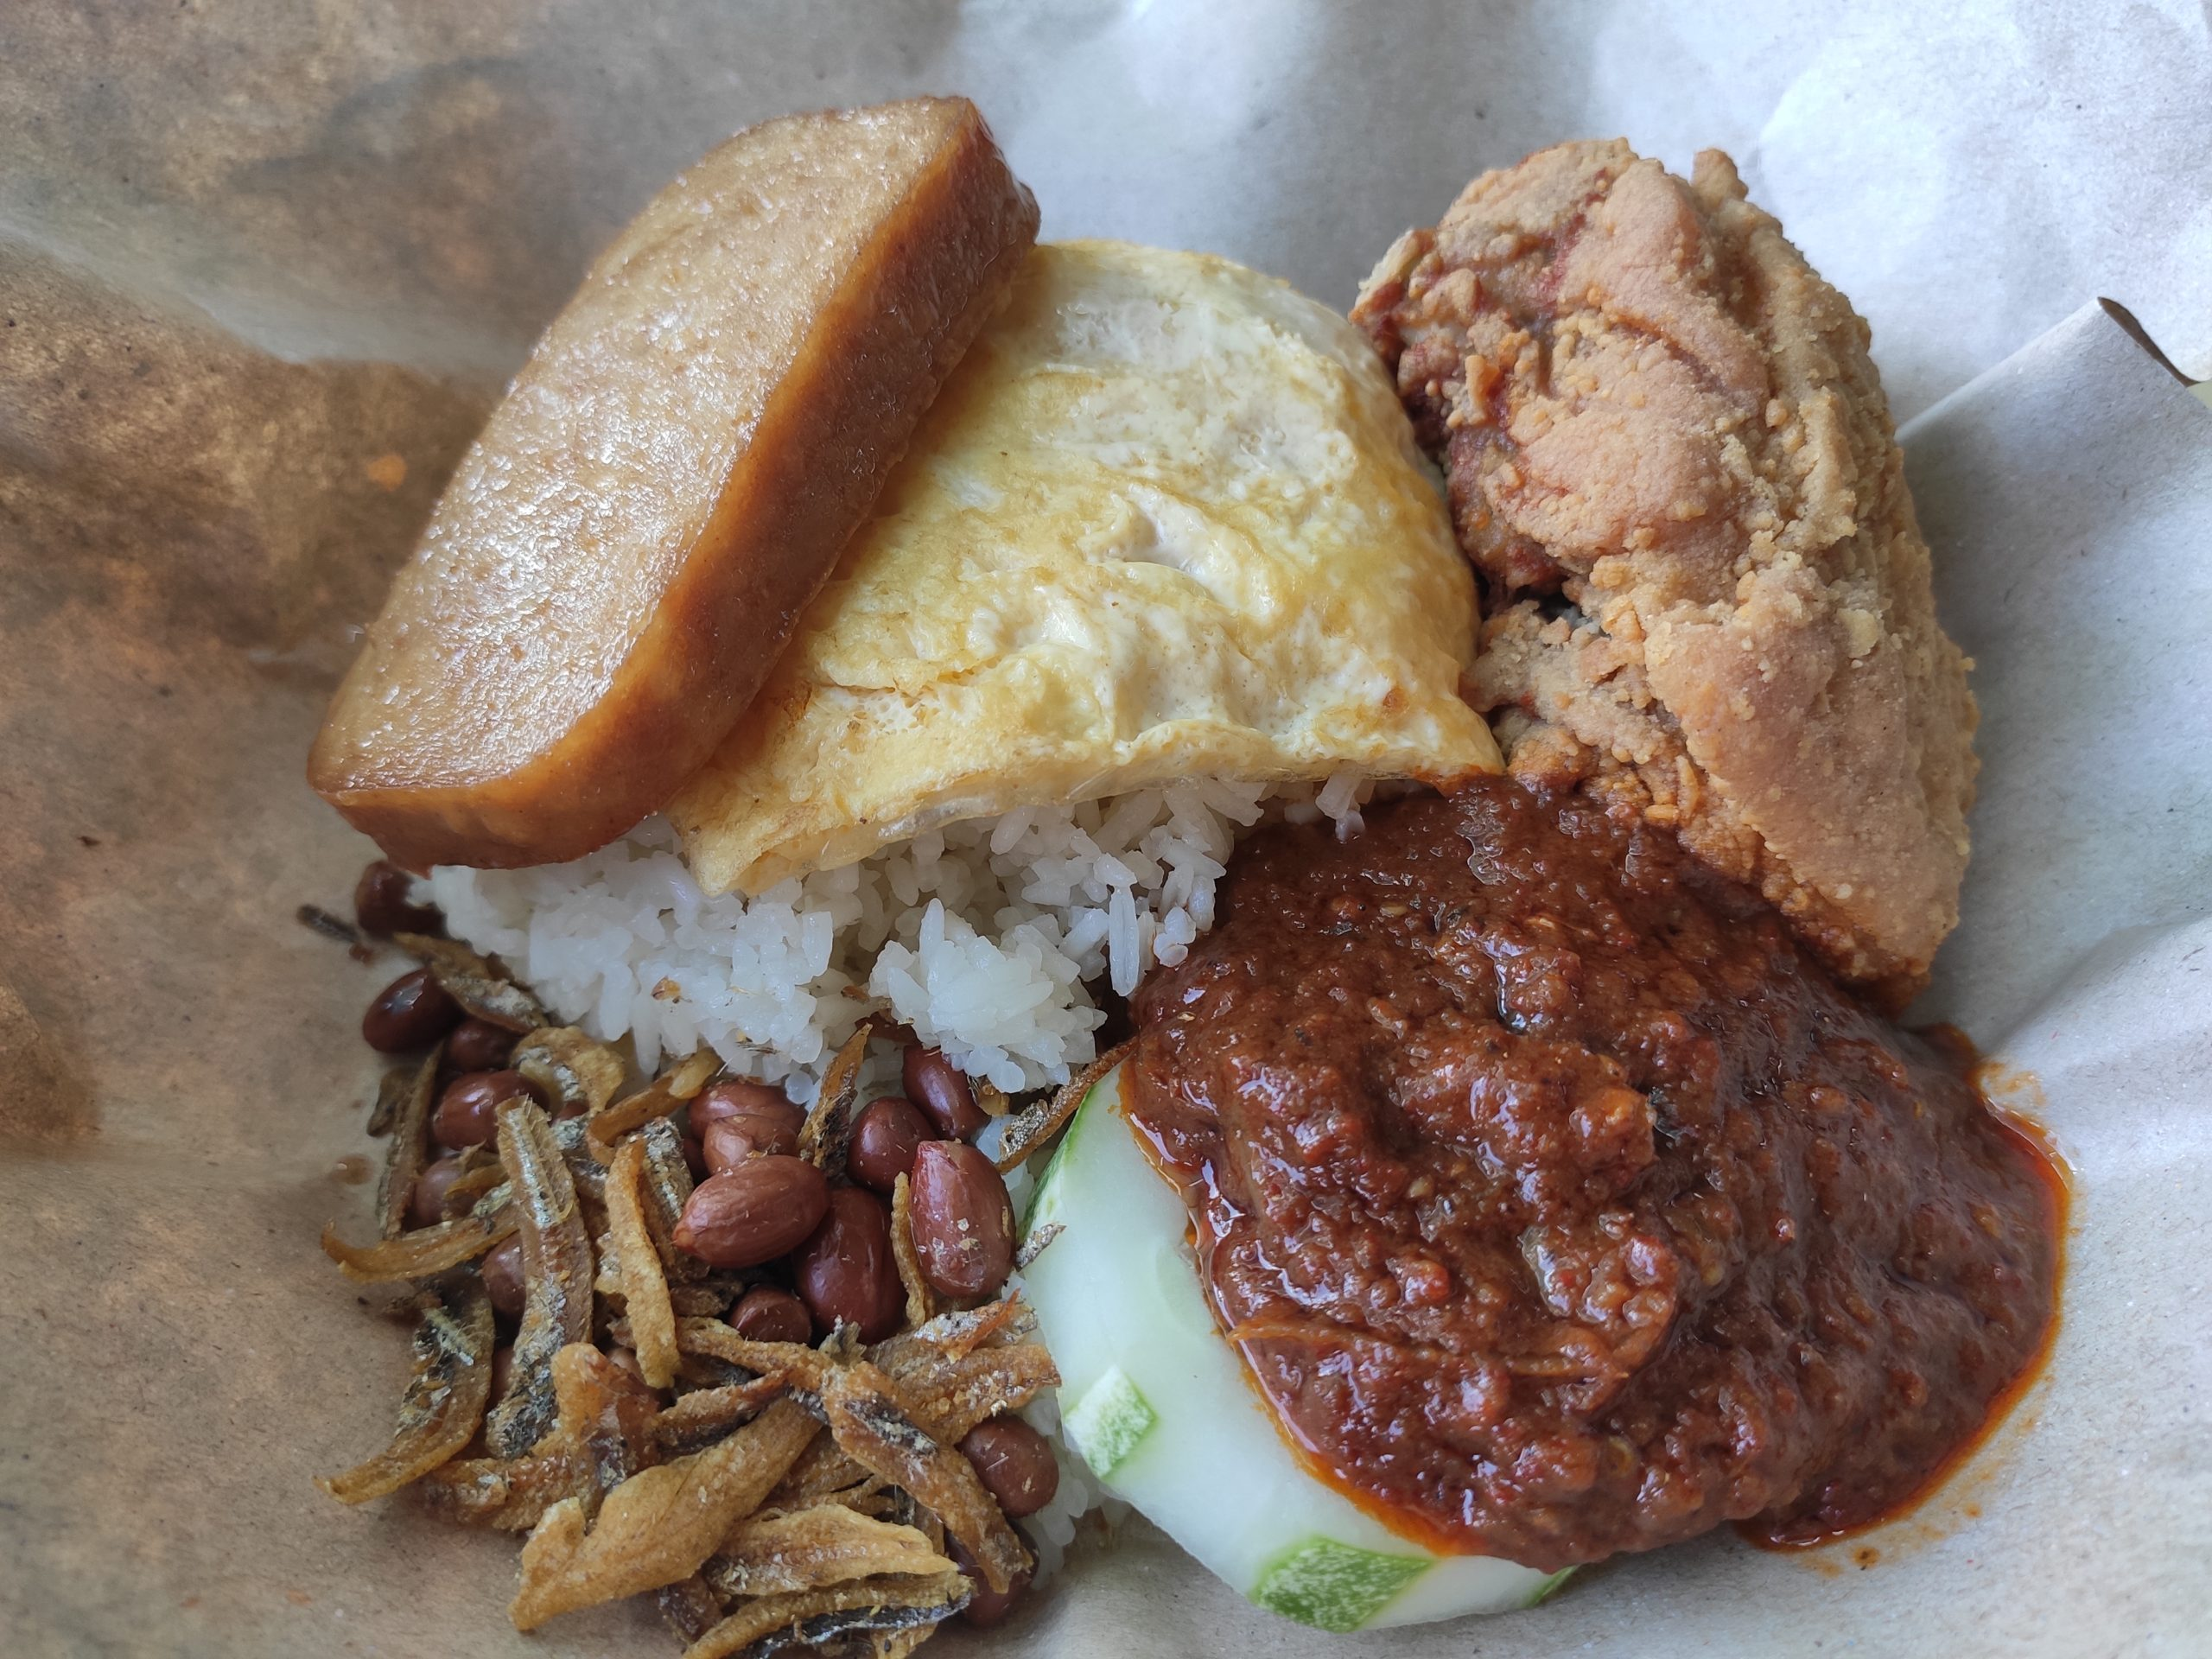 HoYeah Nasi Lemak with Chicken Thigh, Egg Omelette & Luncheon Meat